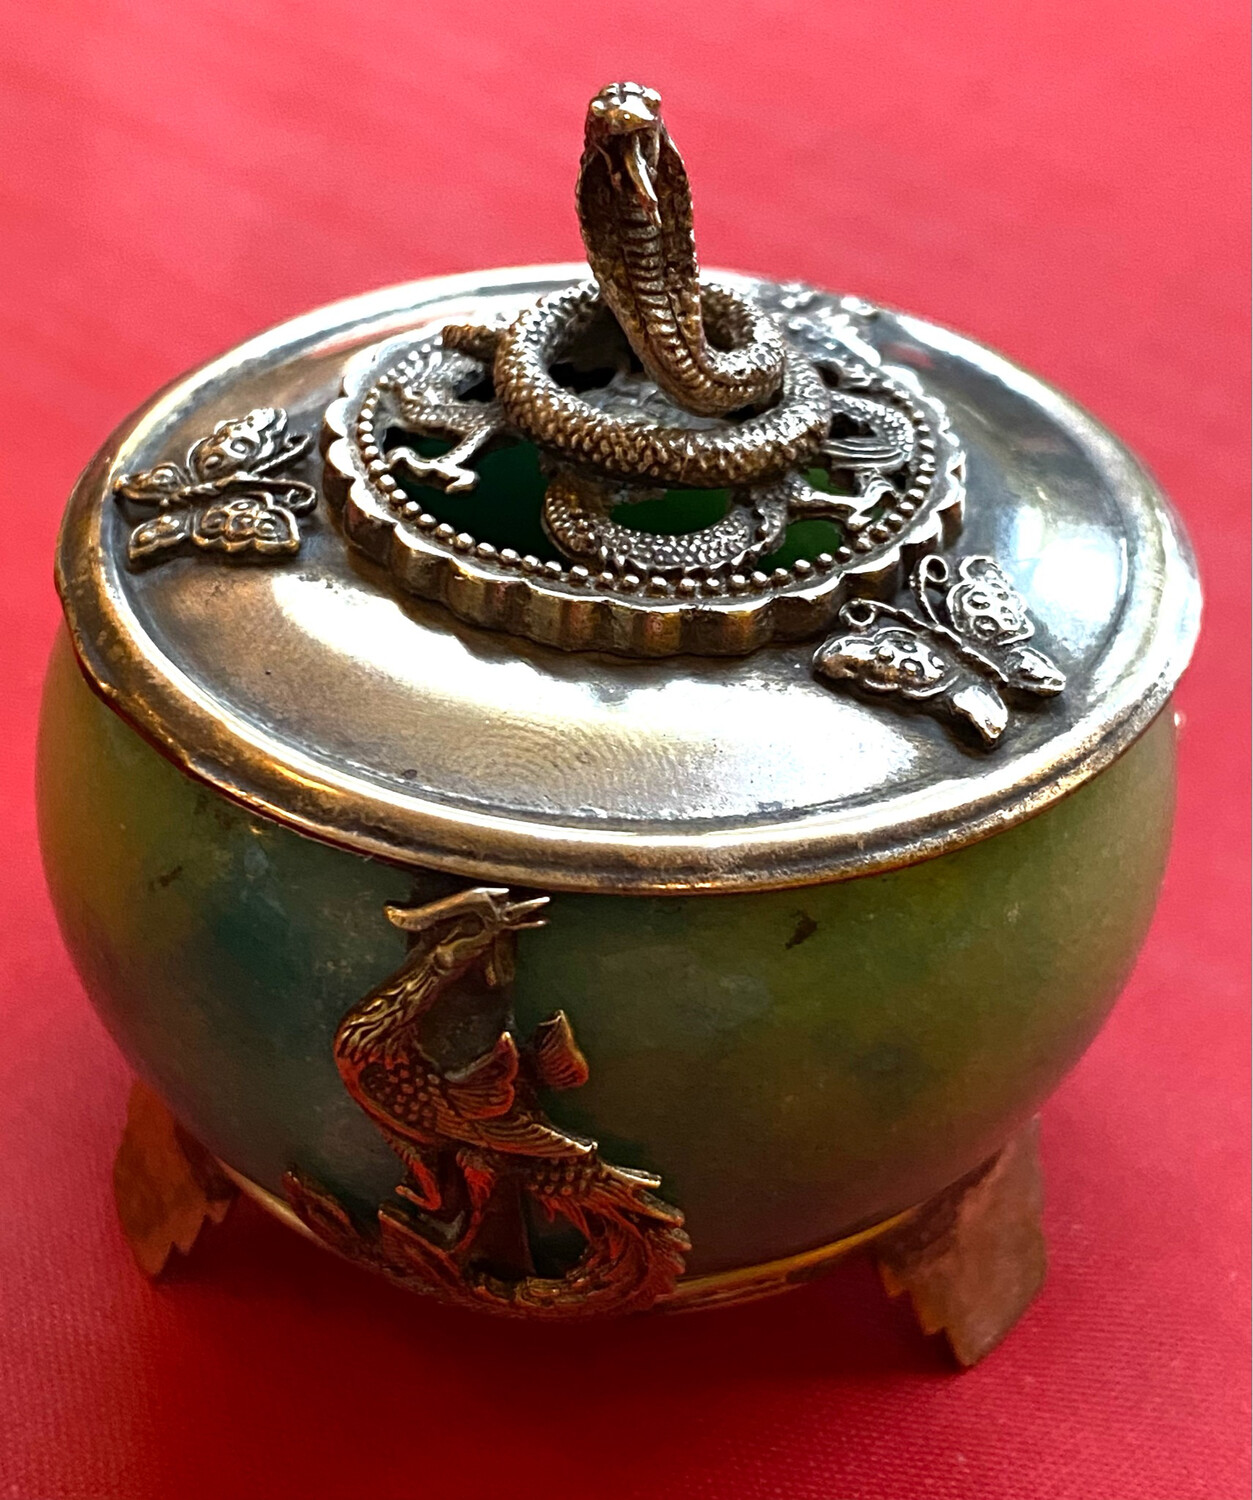 Chinese Silver Lidded And Framed Jar - Marked With Chinese Silver Chop Mark